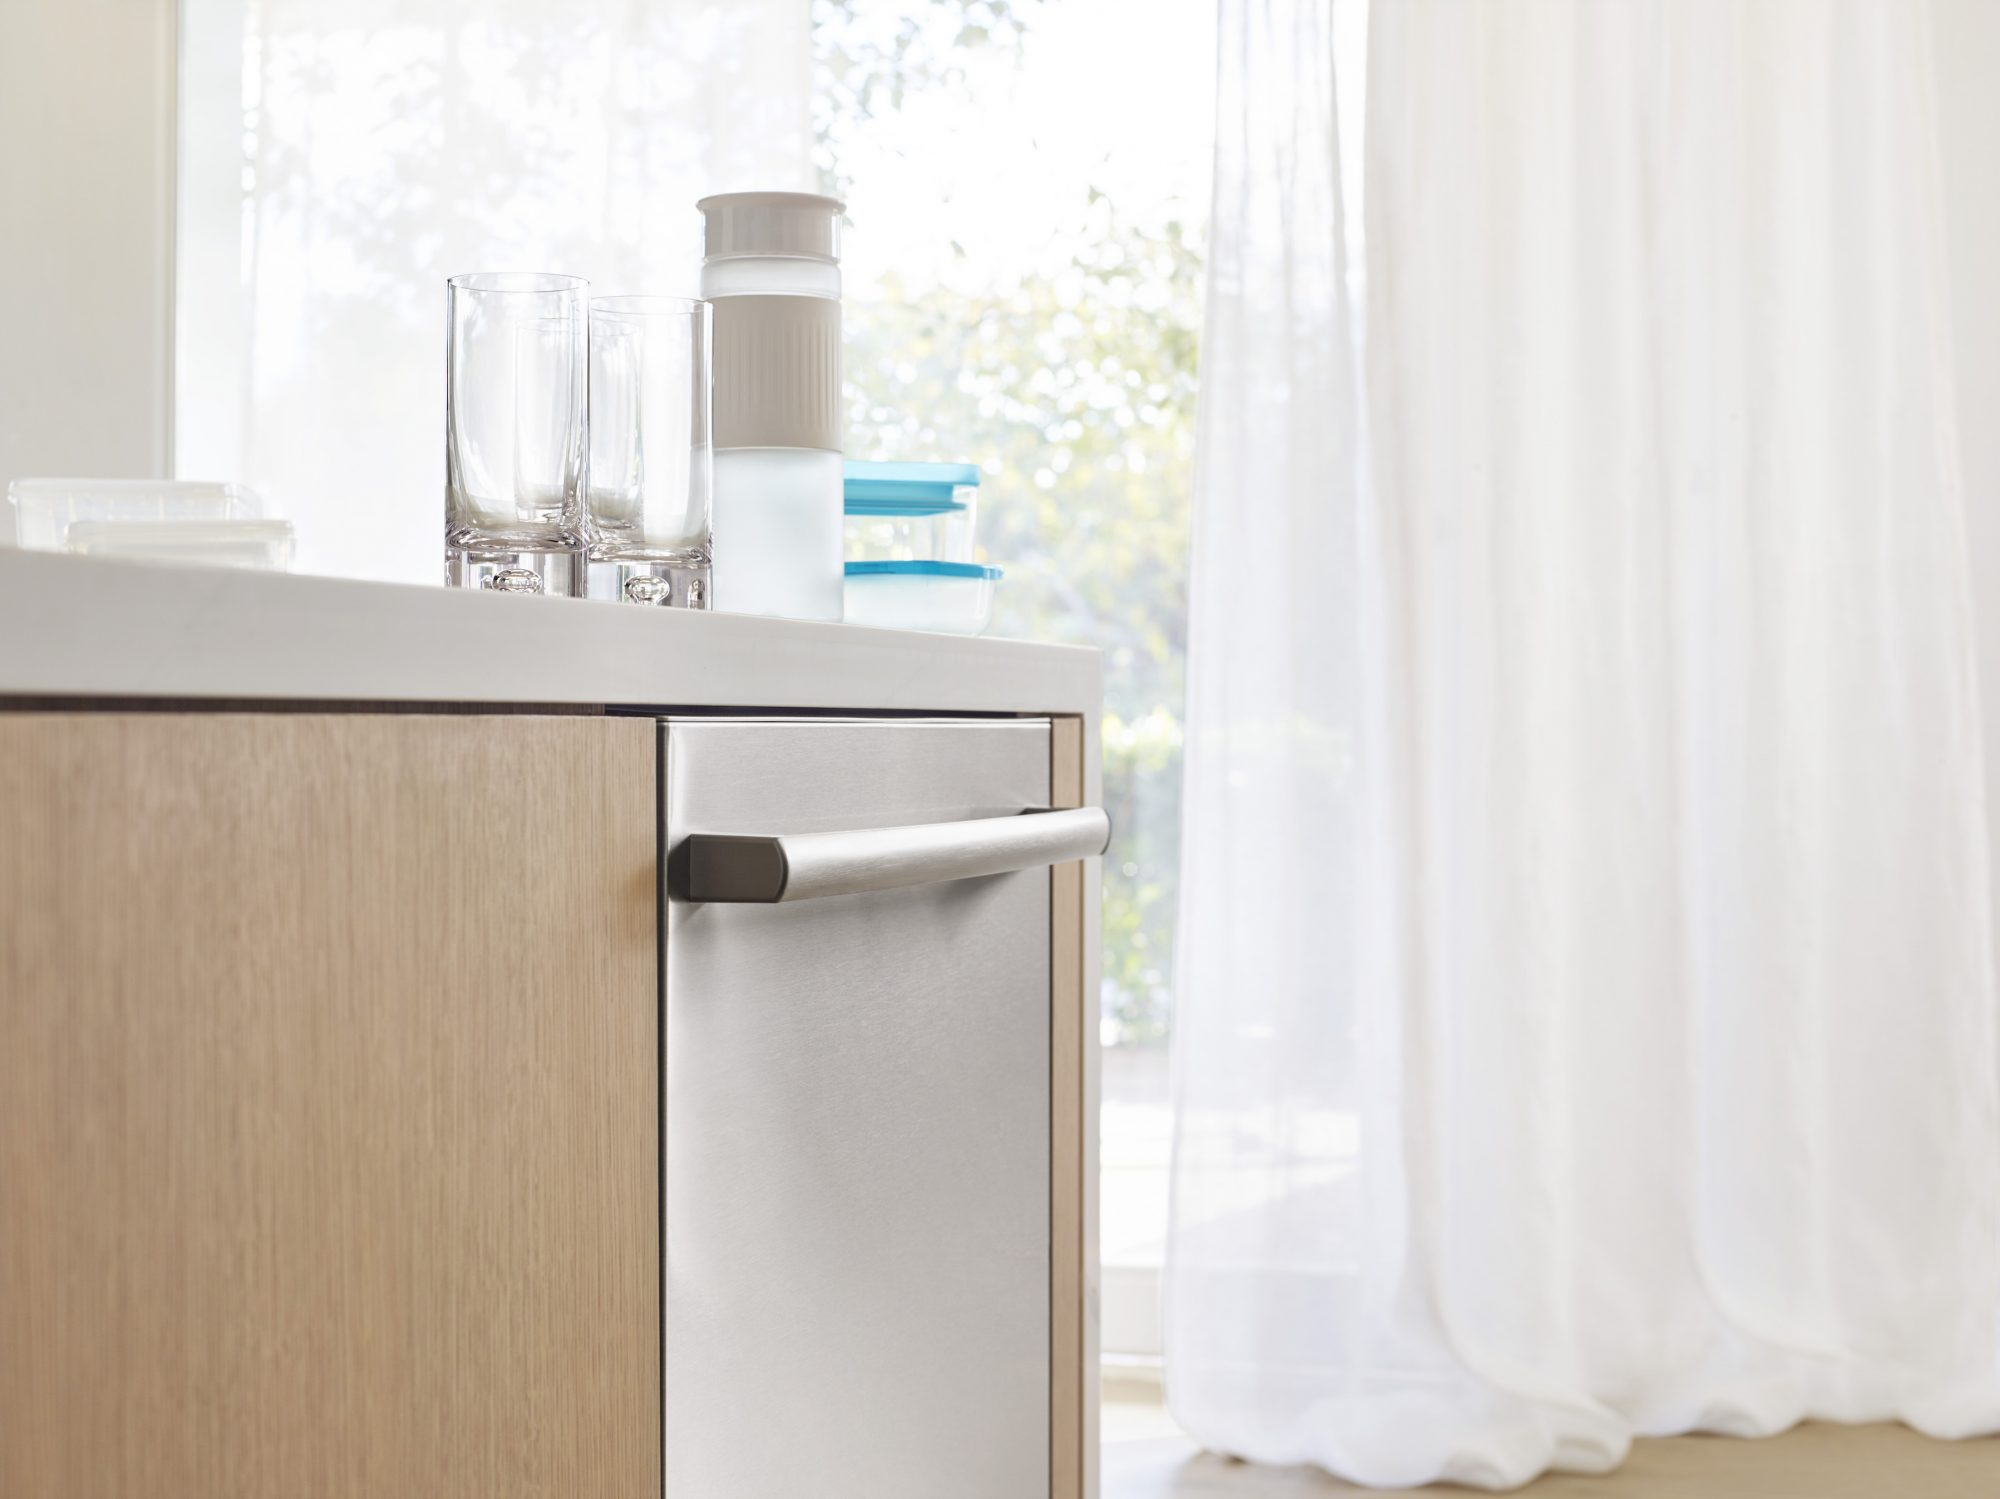 Bosch Dishwasher with CrystalDry